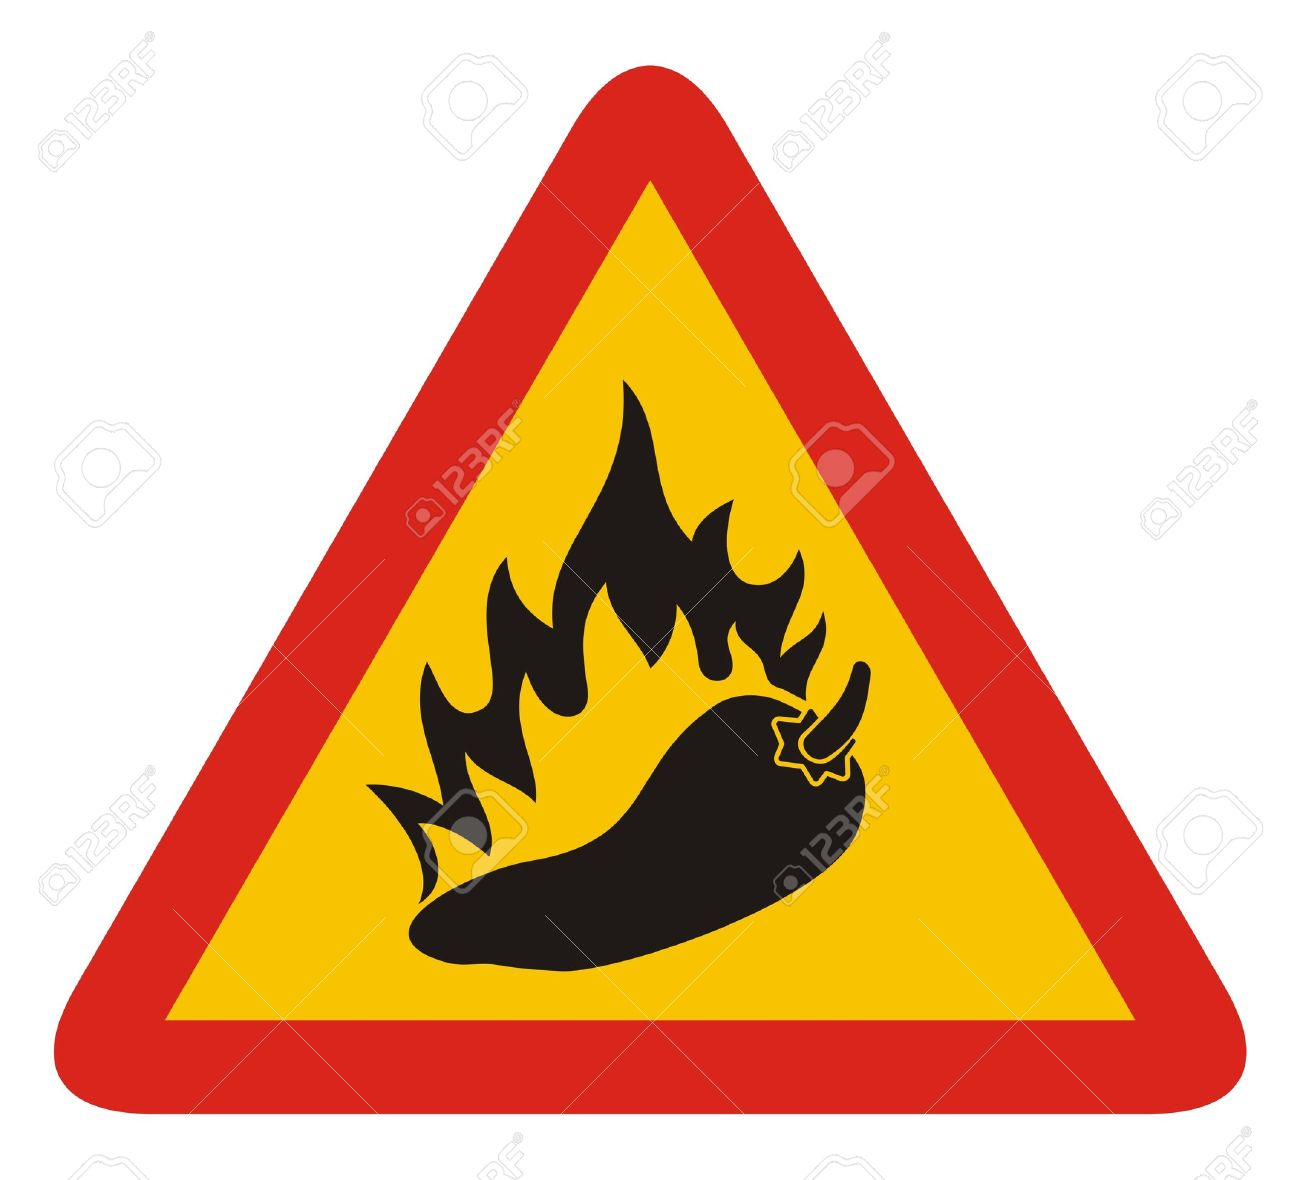 Triangle warning sign with a pepper and flame silhouette. - 10615602